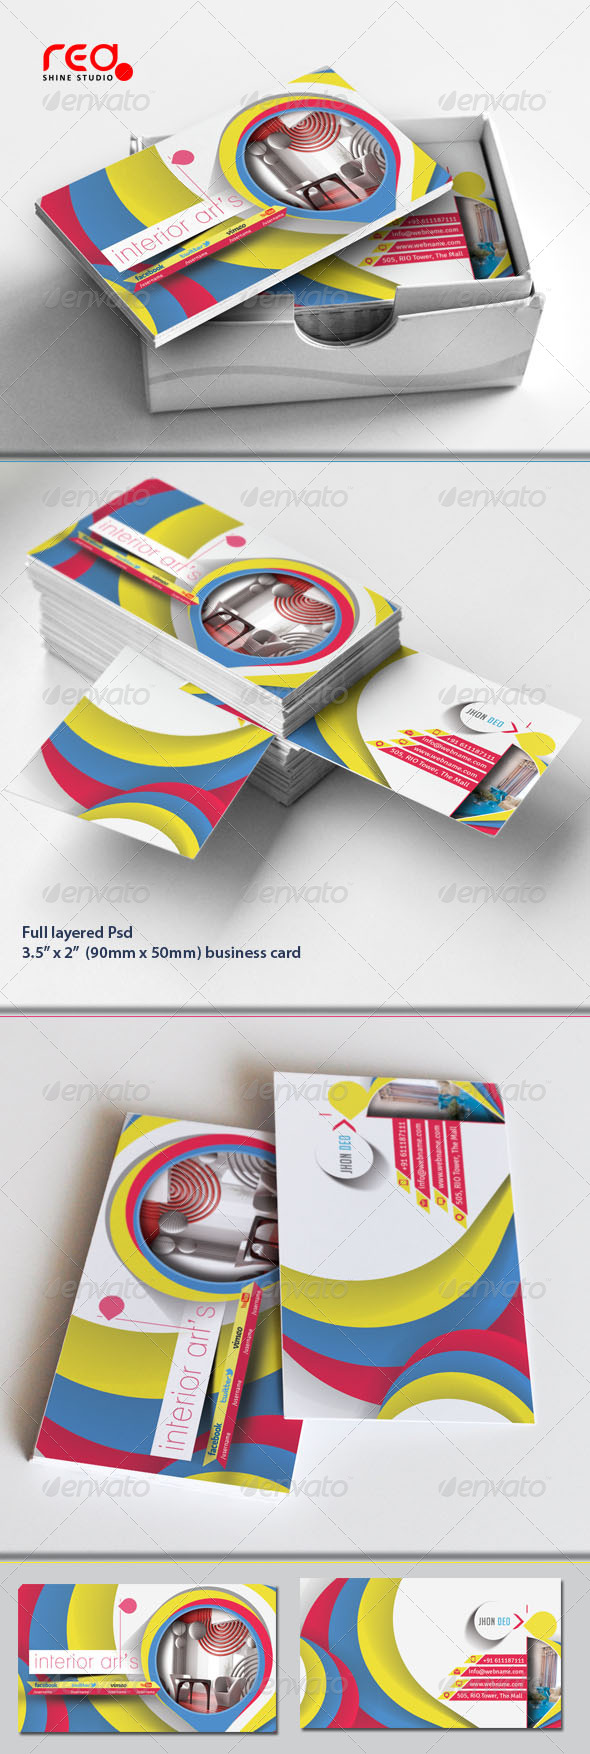 Architecture & Interior Designer Business Card Set - Industry Specific Business Cards